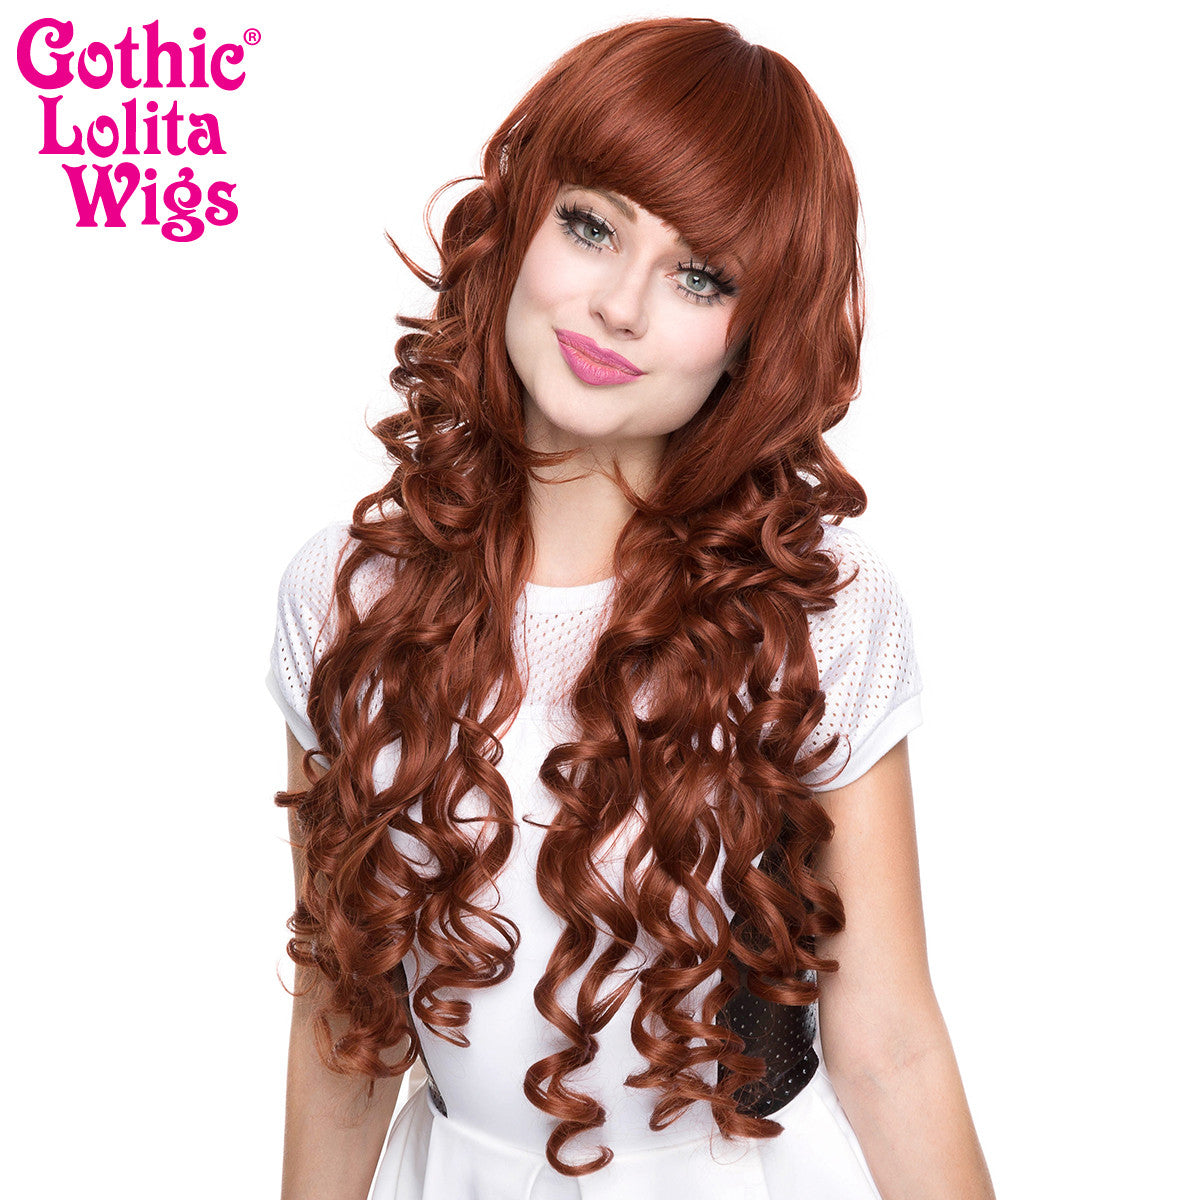 Gothic Lolita Wigs® <br> Duchess Elodie™ Collection - Auburn Mix -00048